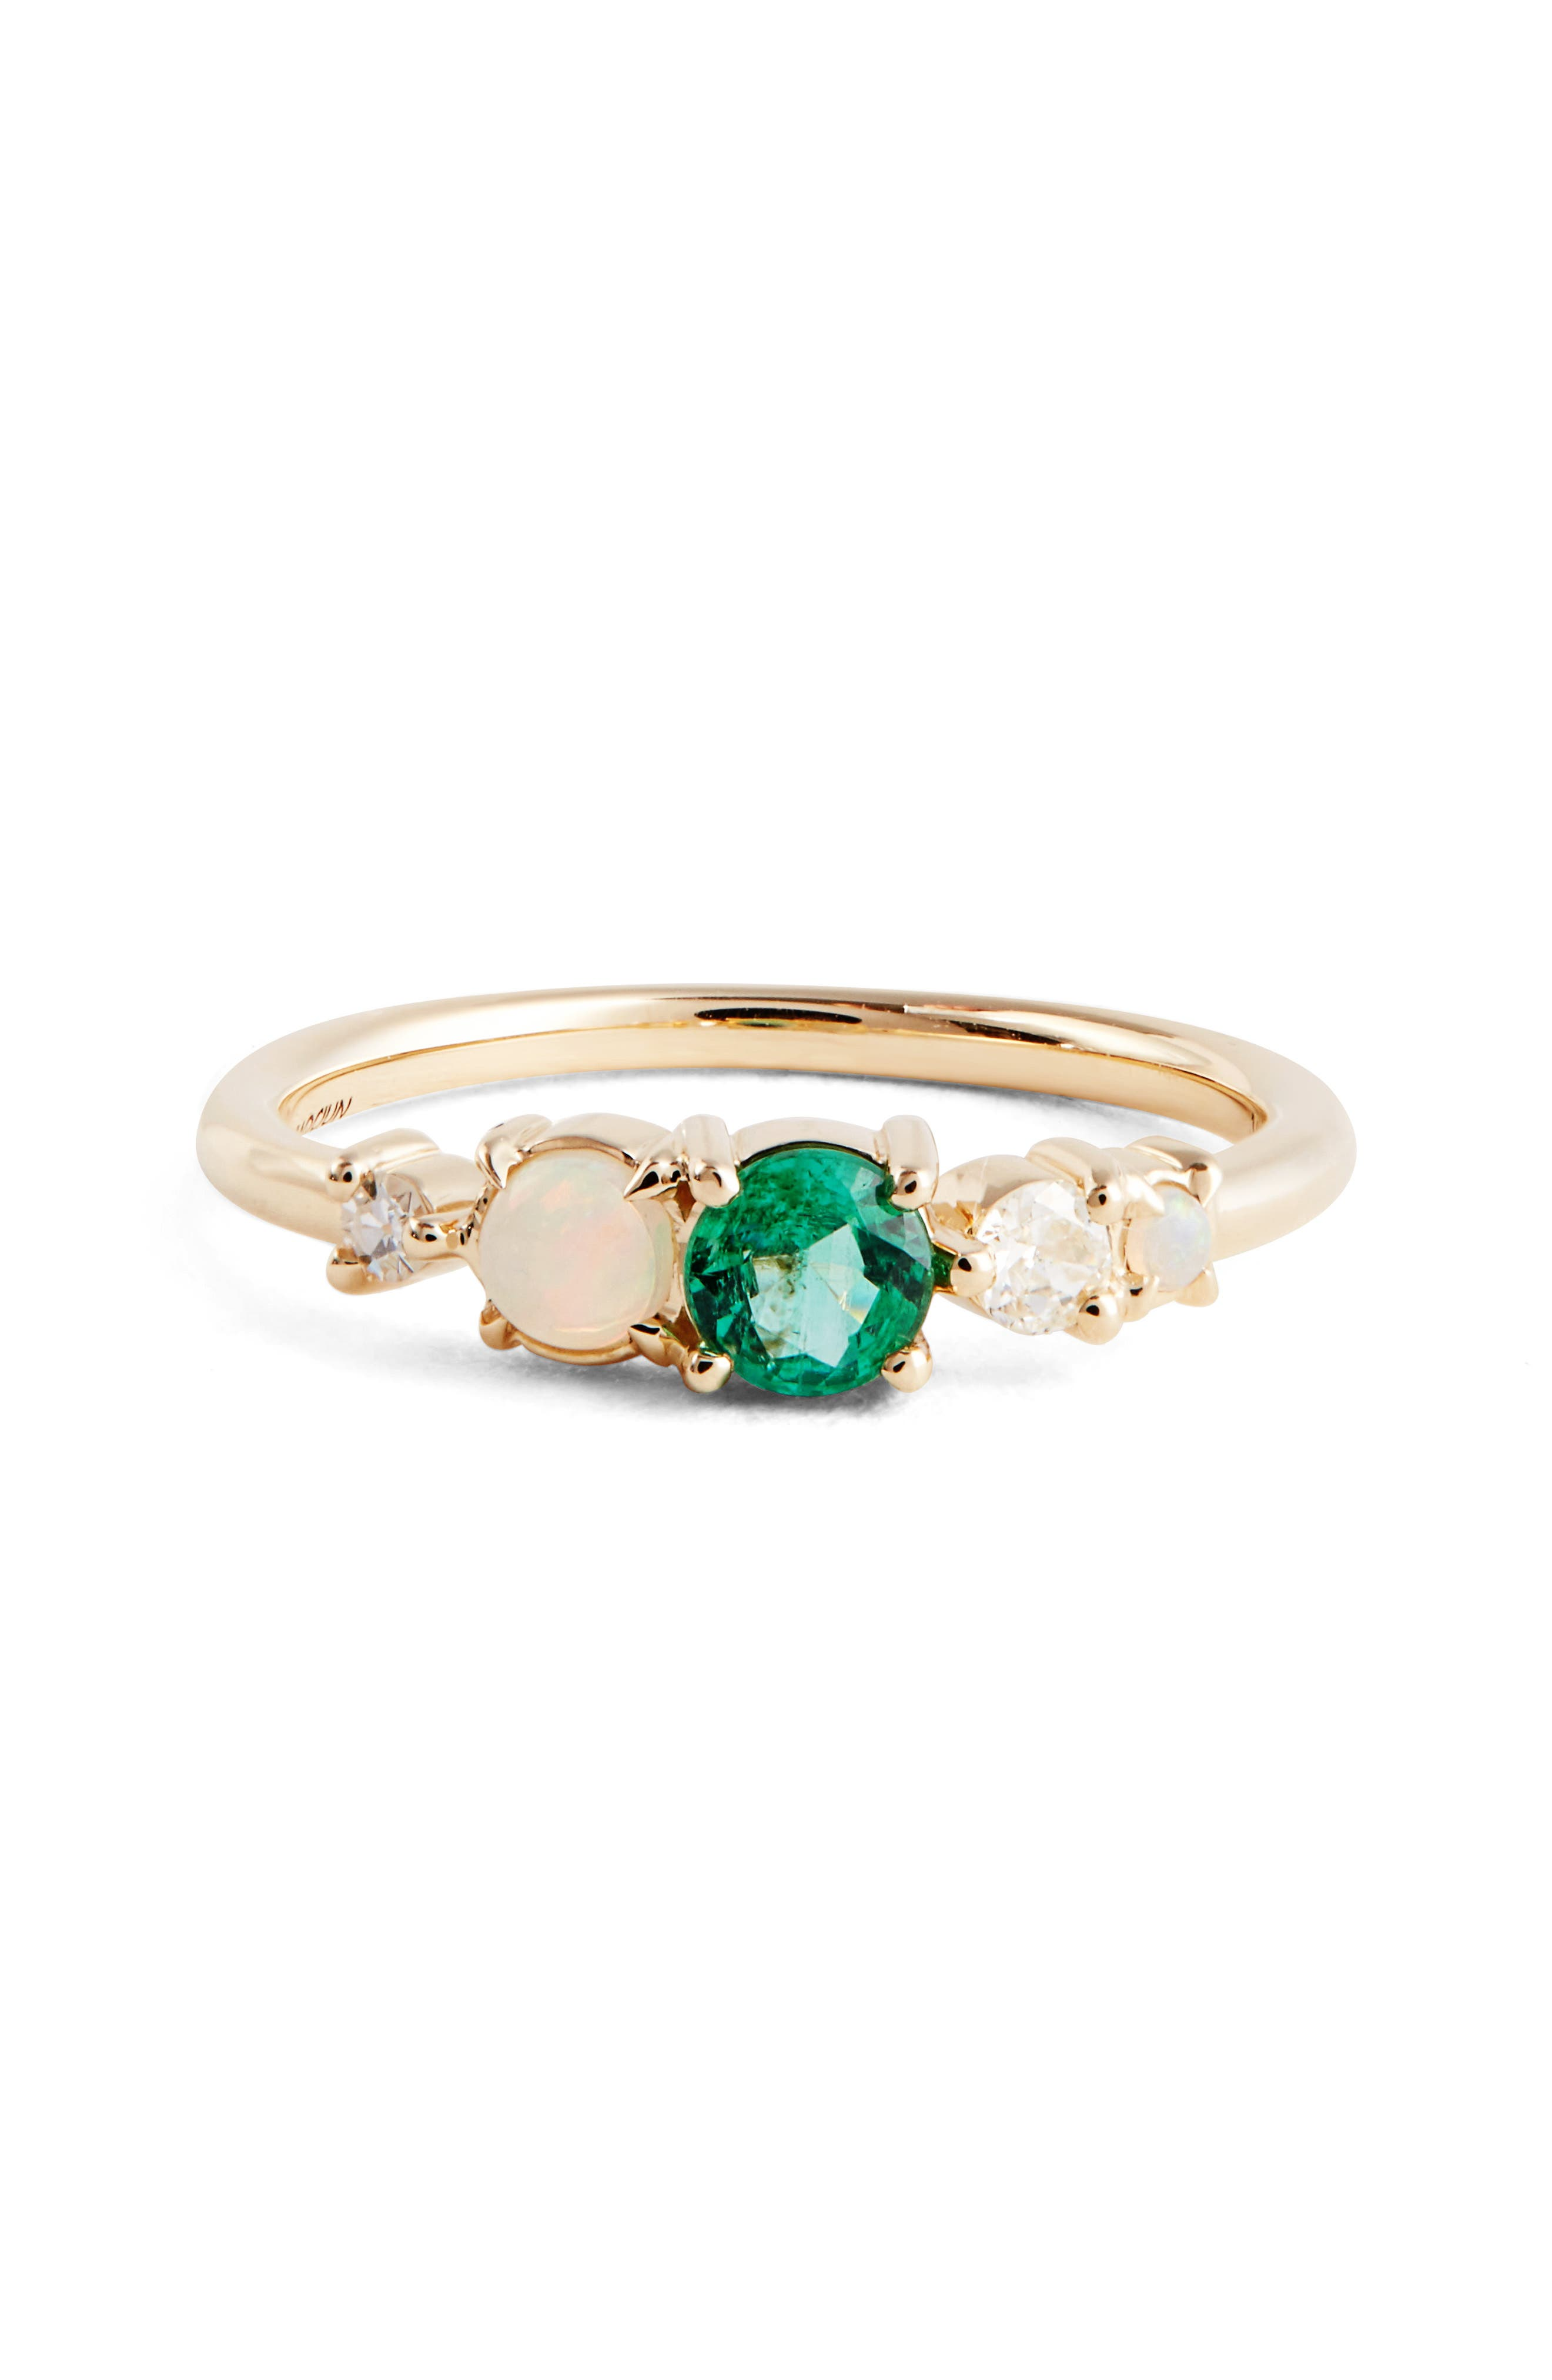 Main Image - MOCIUN Emerald, Opal & Diamond Ring (Nordstrom Exclusive)